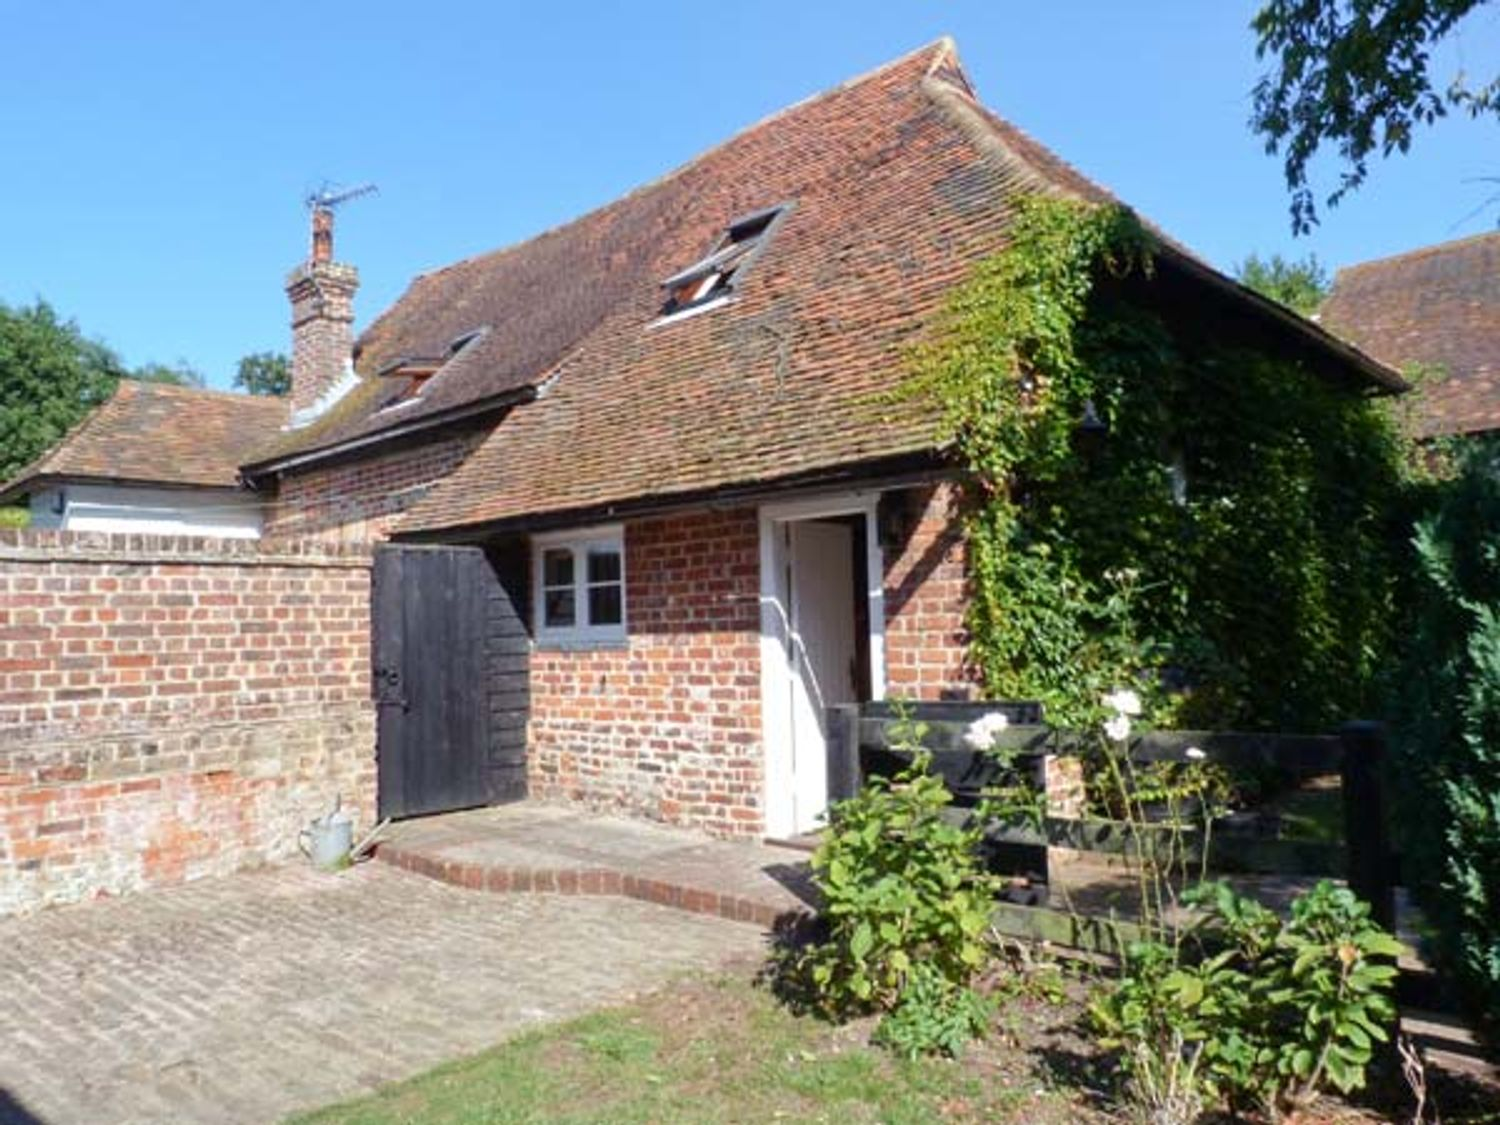 Holiday Cottages in Kent: Brew Cottage, Marshside | Sykes Cottages